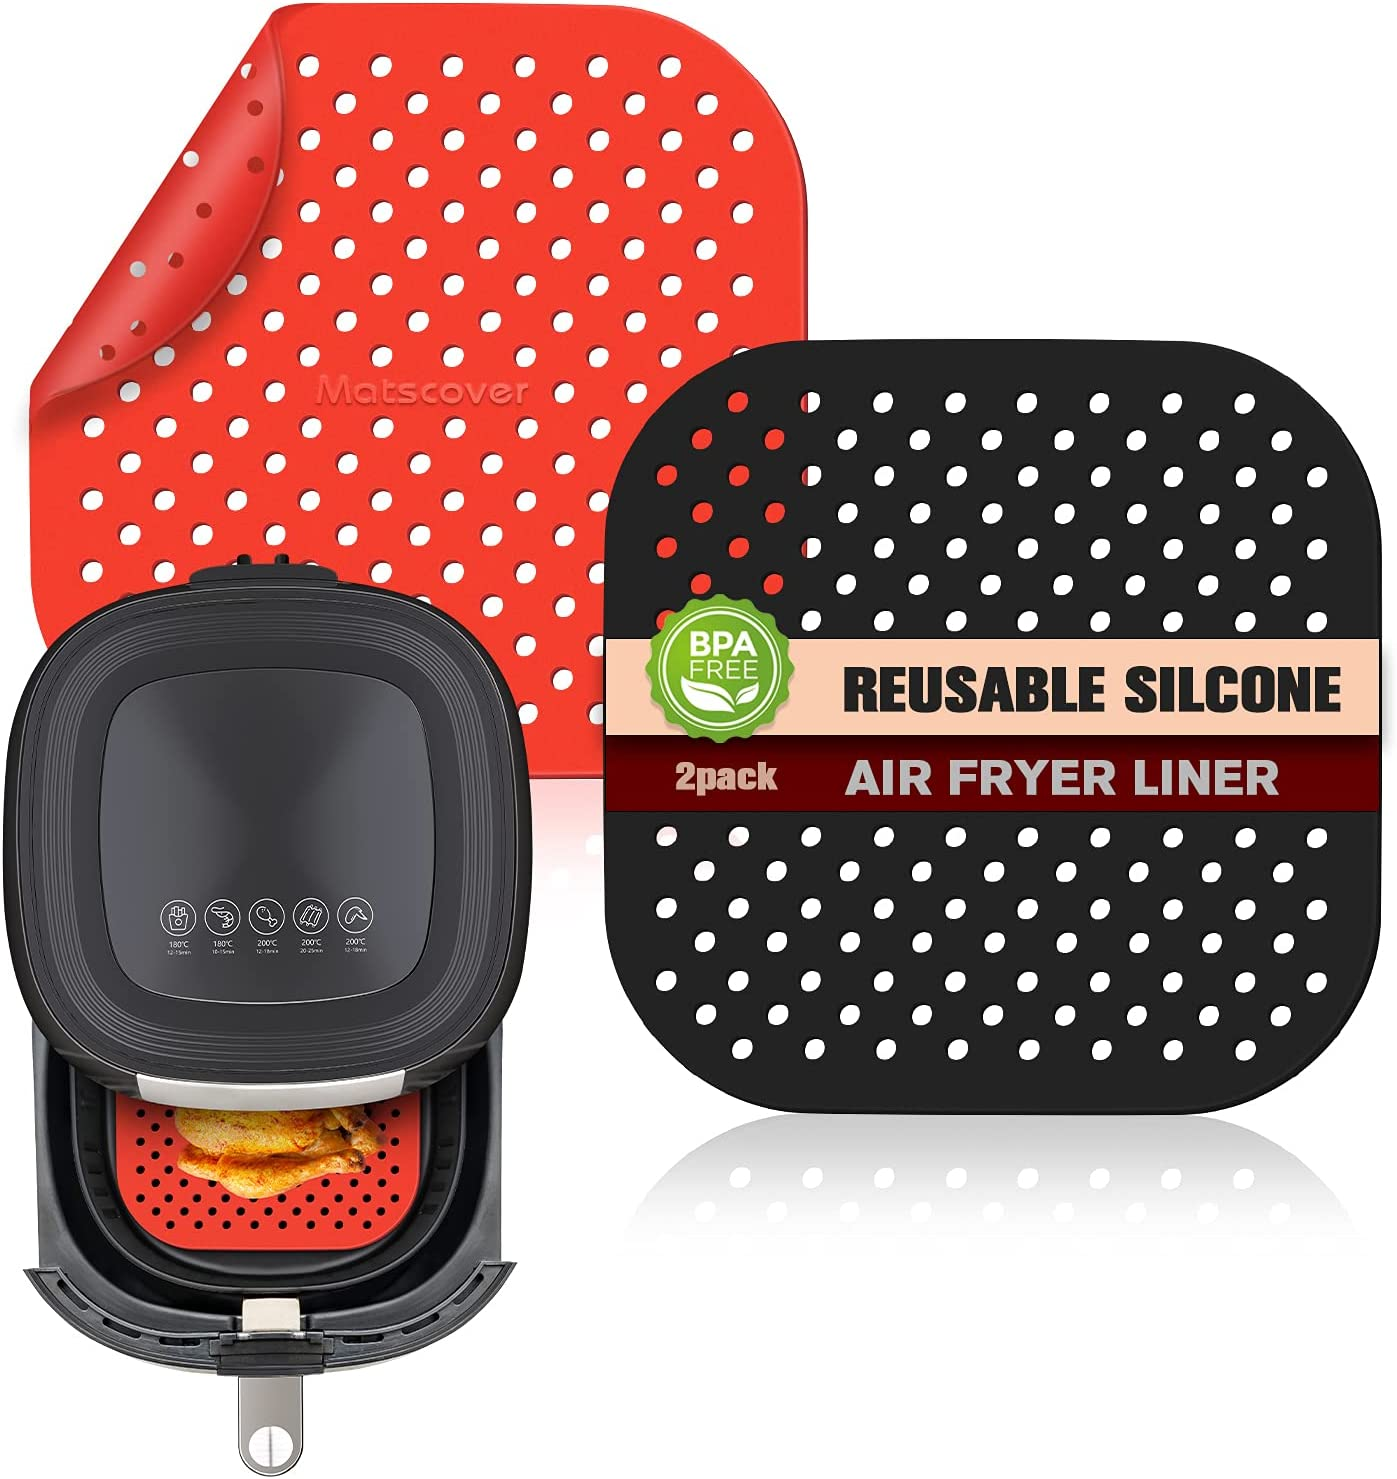 INYOU Reusable Air Fryer Liners| Non-Stick Silicone Air Fryer Accessories| Air Fryer Accessory Mats Silicone Liners 9in Square (2Pack)